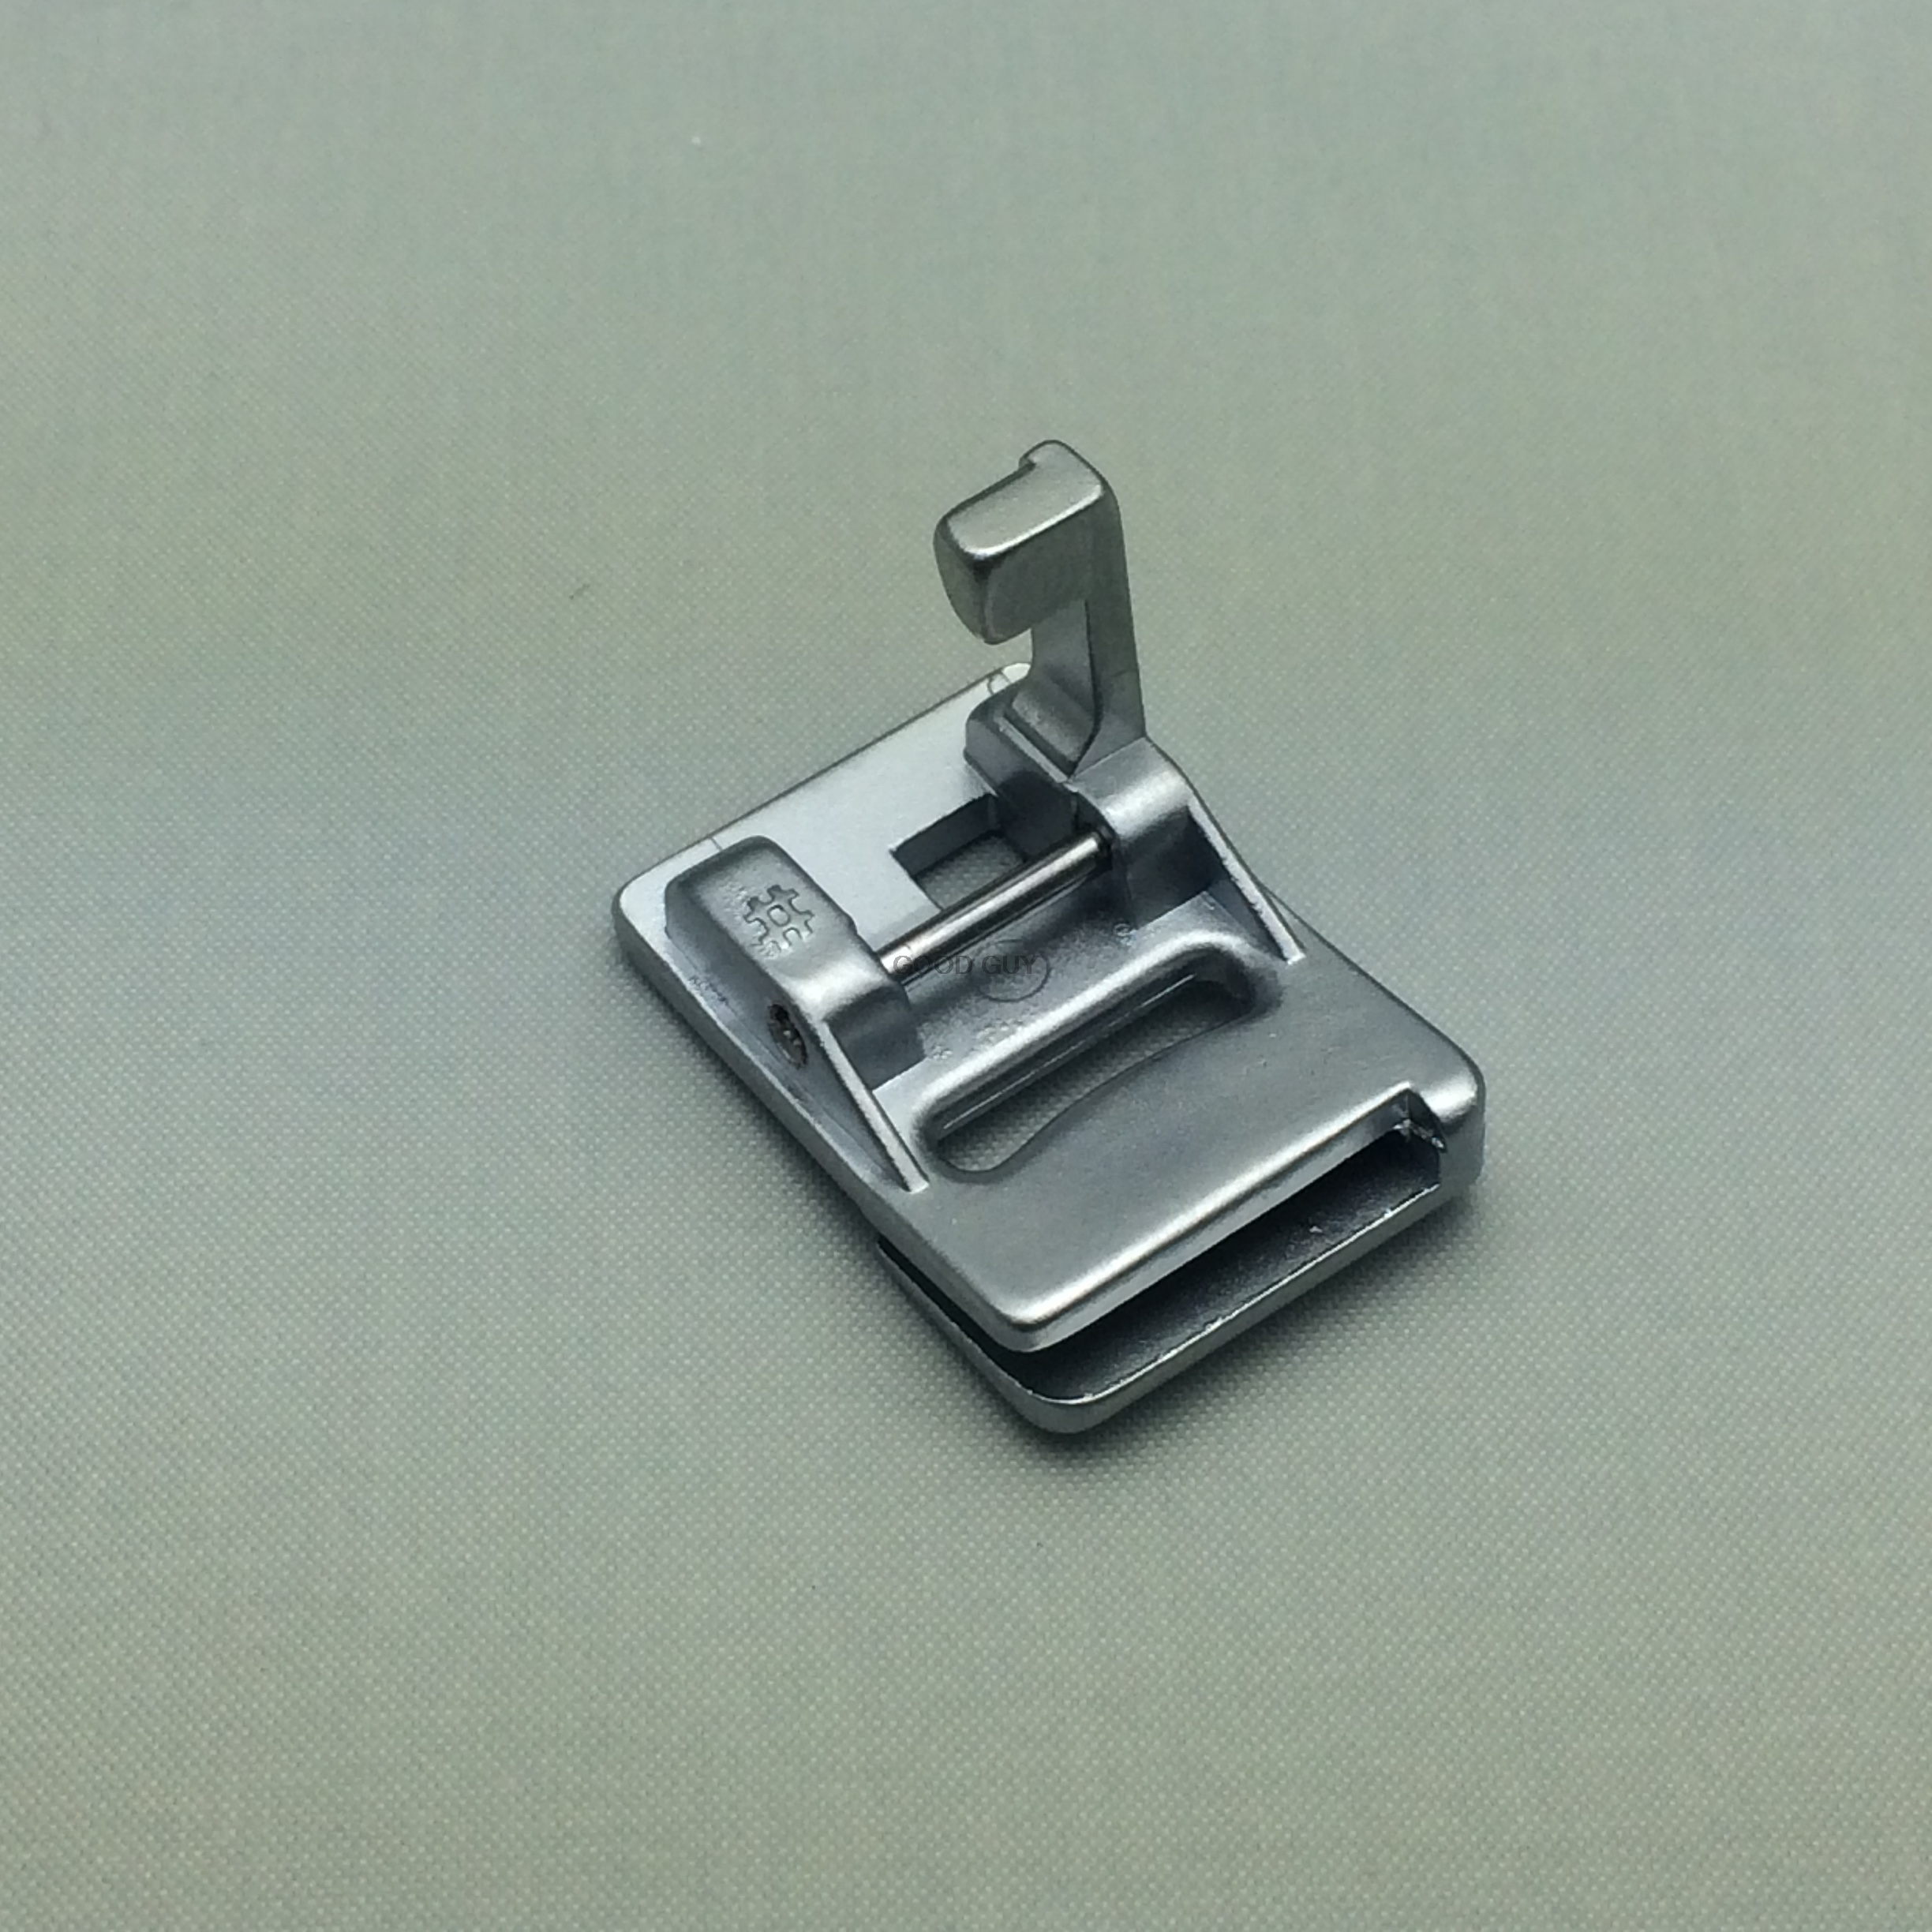 PFAFF SEWING MACHINE PRESSER FOOT 93-036967-91 GATHERING SHIRRING FOOT PFAFF WITHOUT IDT CREATIVE SELECT EXPRESSION #820668096